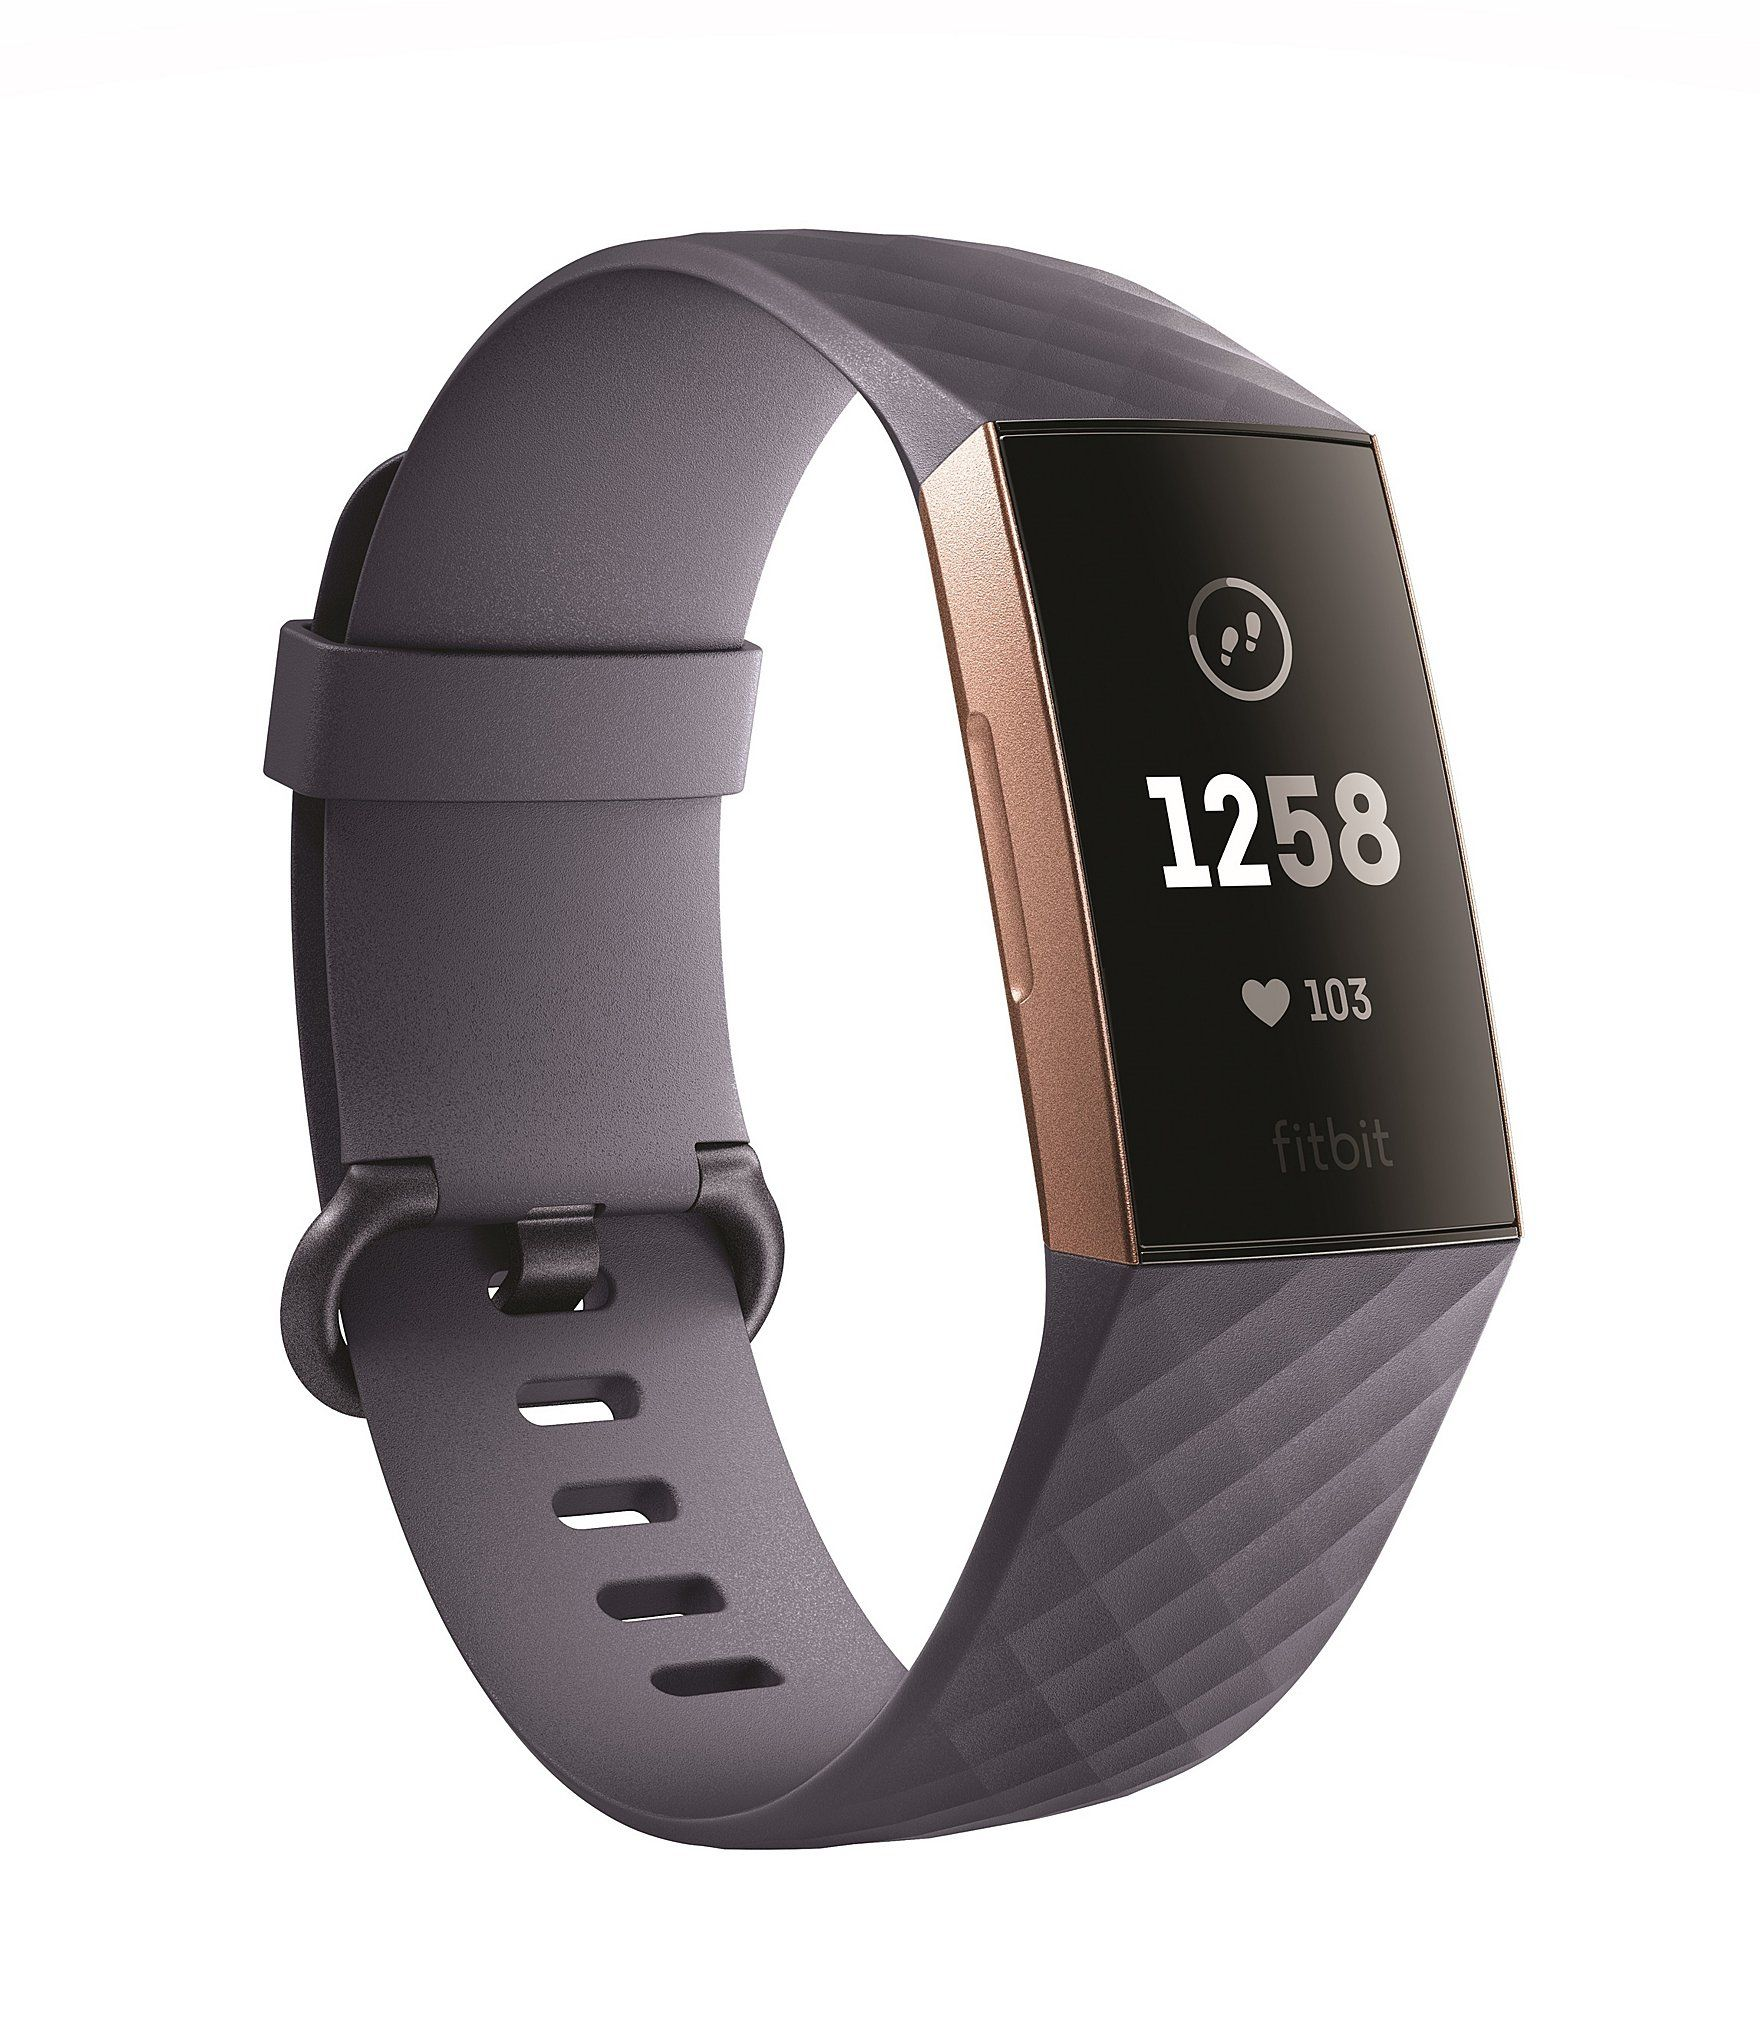 Understand your health and take action to improve with Fitbit Charge 3an advanced fitness tracker that uses 24/7 heart rate & personalized insights to reveal what's below the surface.What's Included:Fitbit Charge 3Classic wristbands (both small & large) Charging cableFeatures: Touchscreen dial, 24/7 heart rate, all day activity tracking, smartphone notifications, sleep tracking, female health t